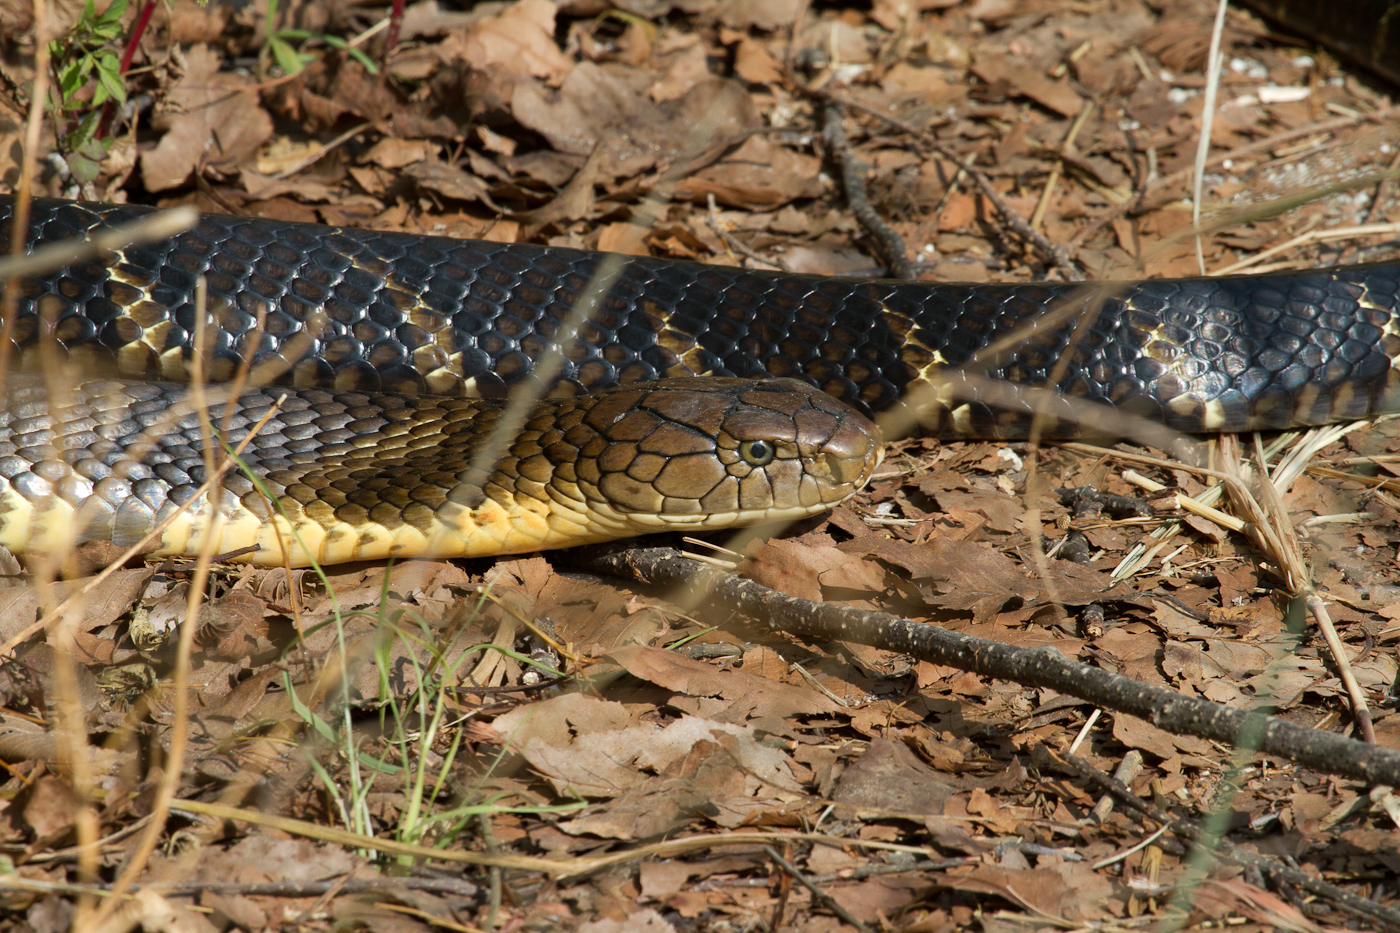 Our bird guide almost walked right into this King Cobra